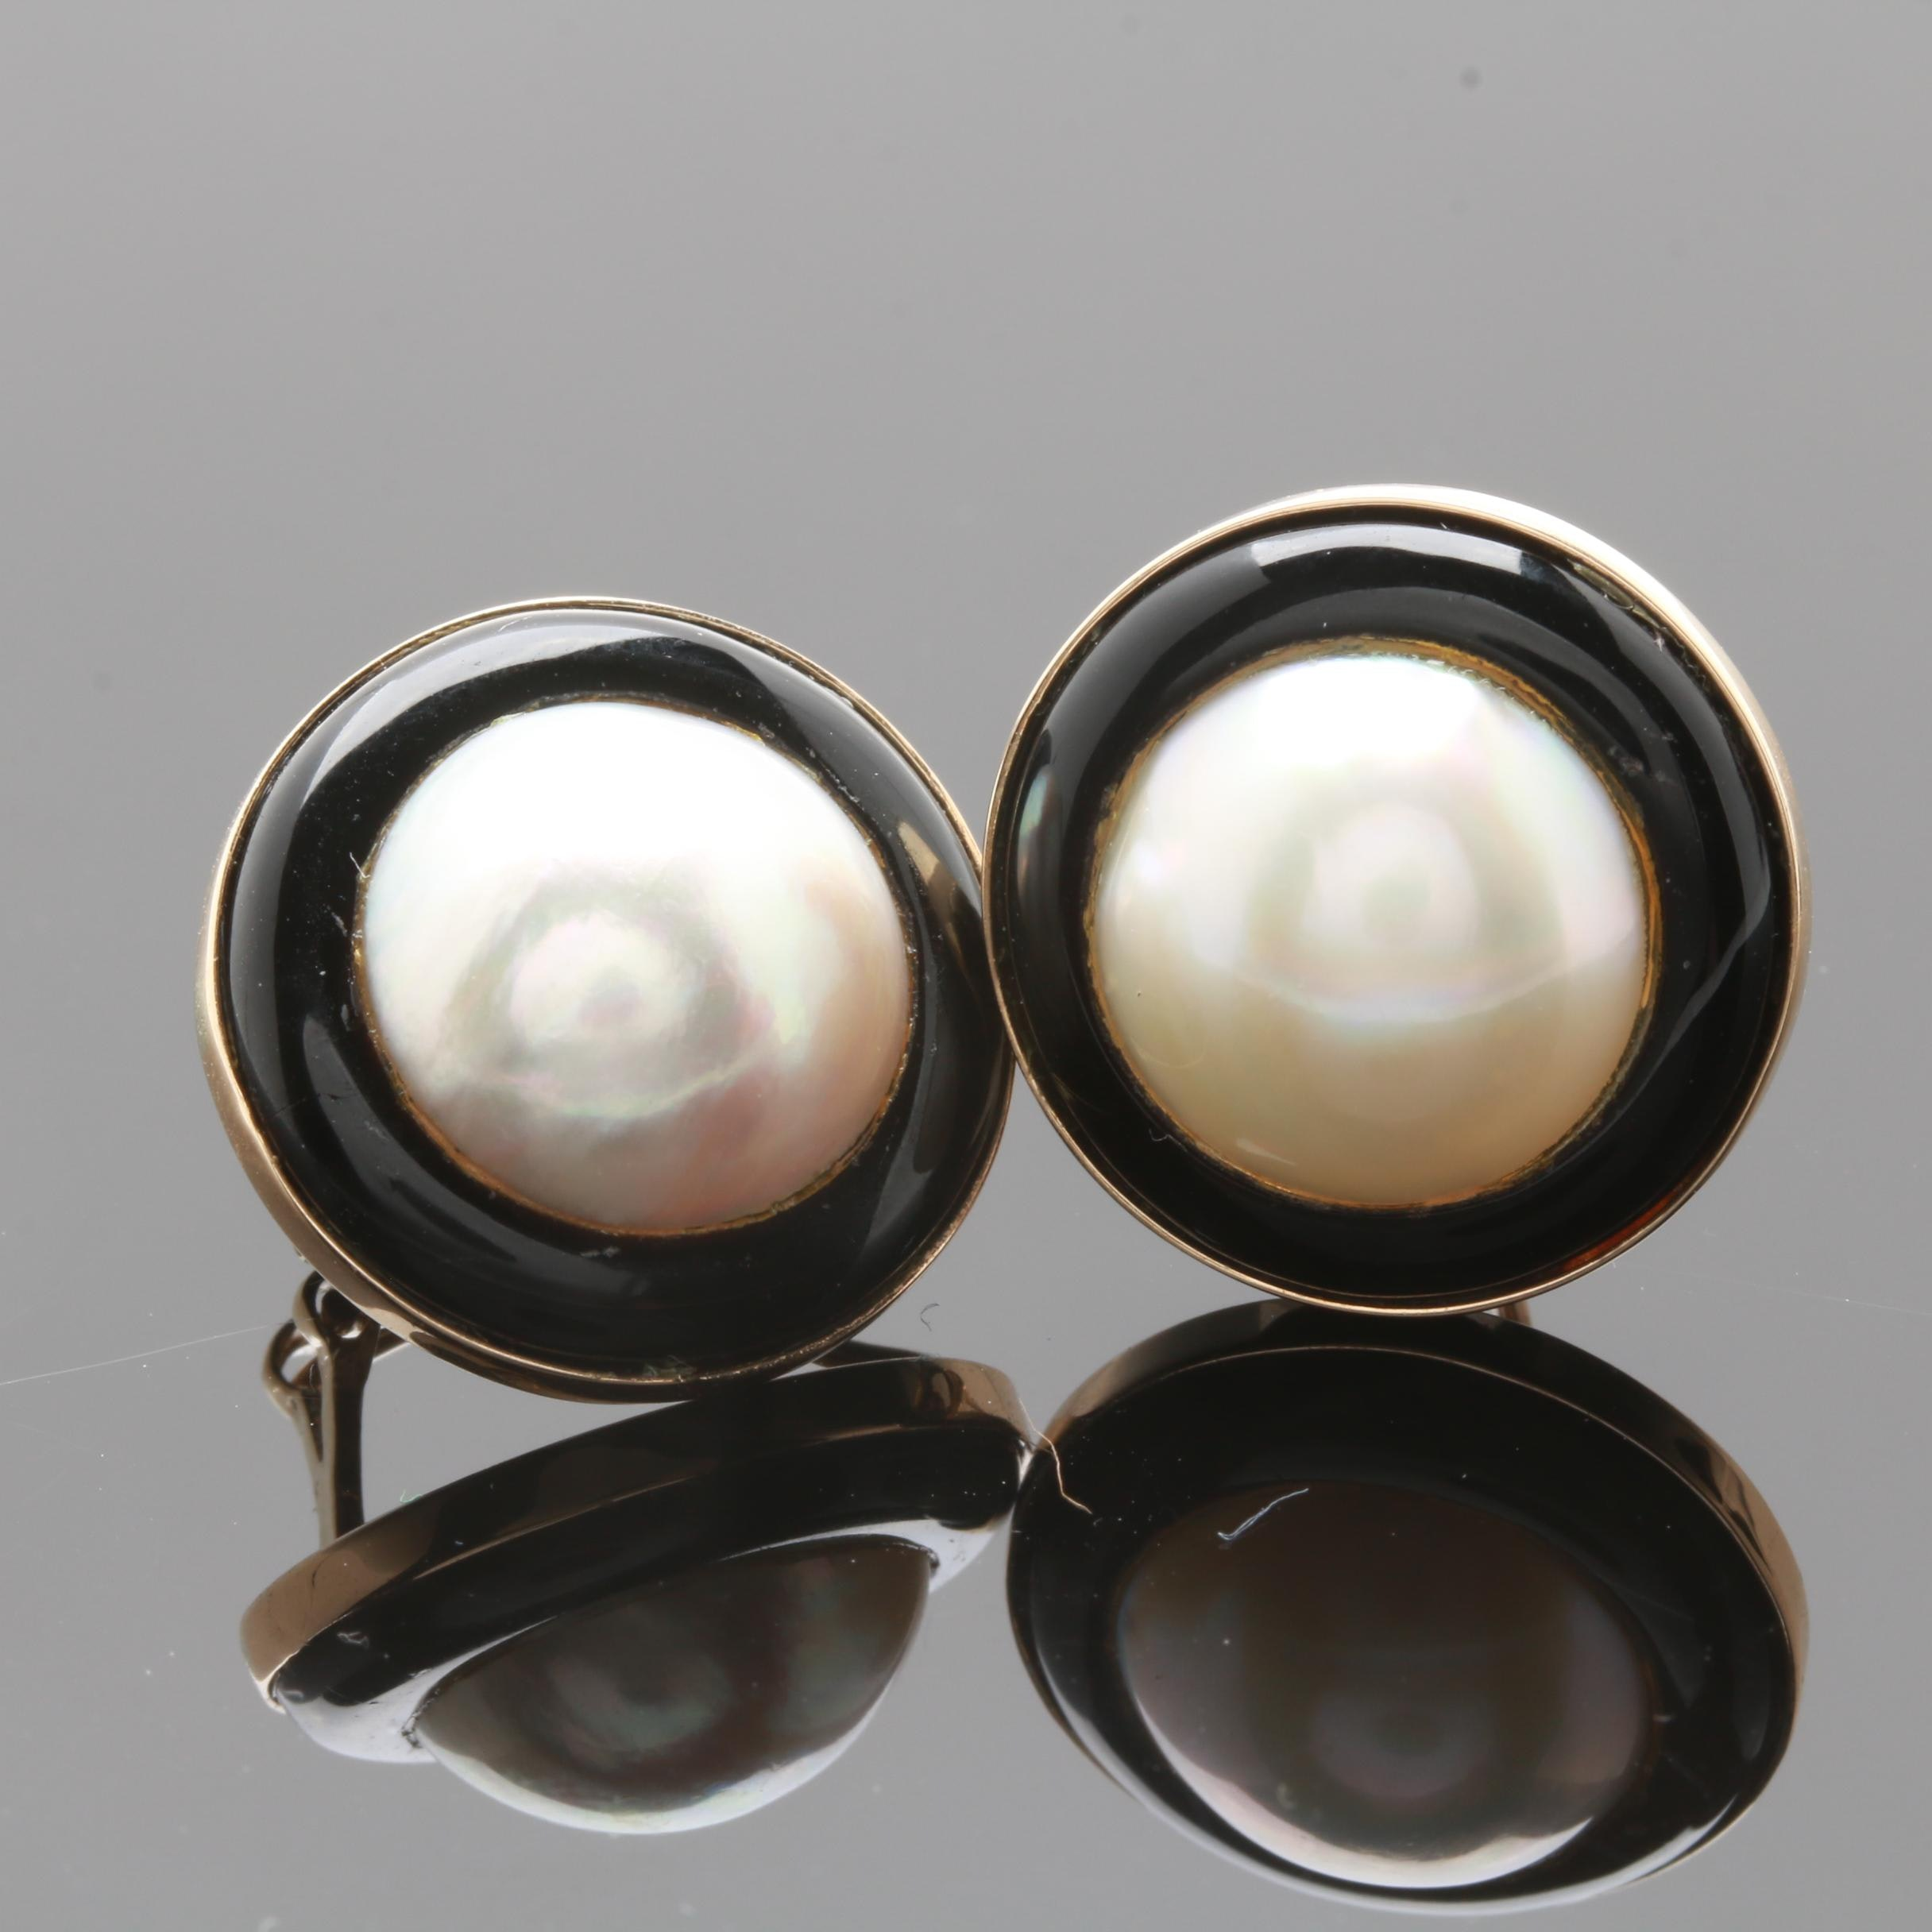 14K Yellow Gold Cultured Mabé Pearl and Imitation Black Onyx Earrings